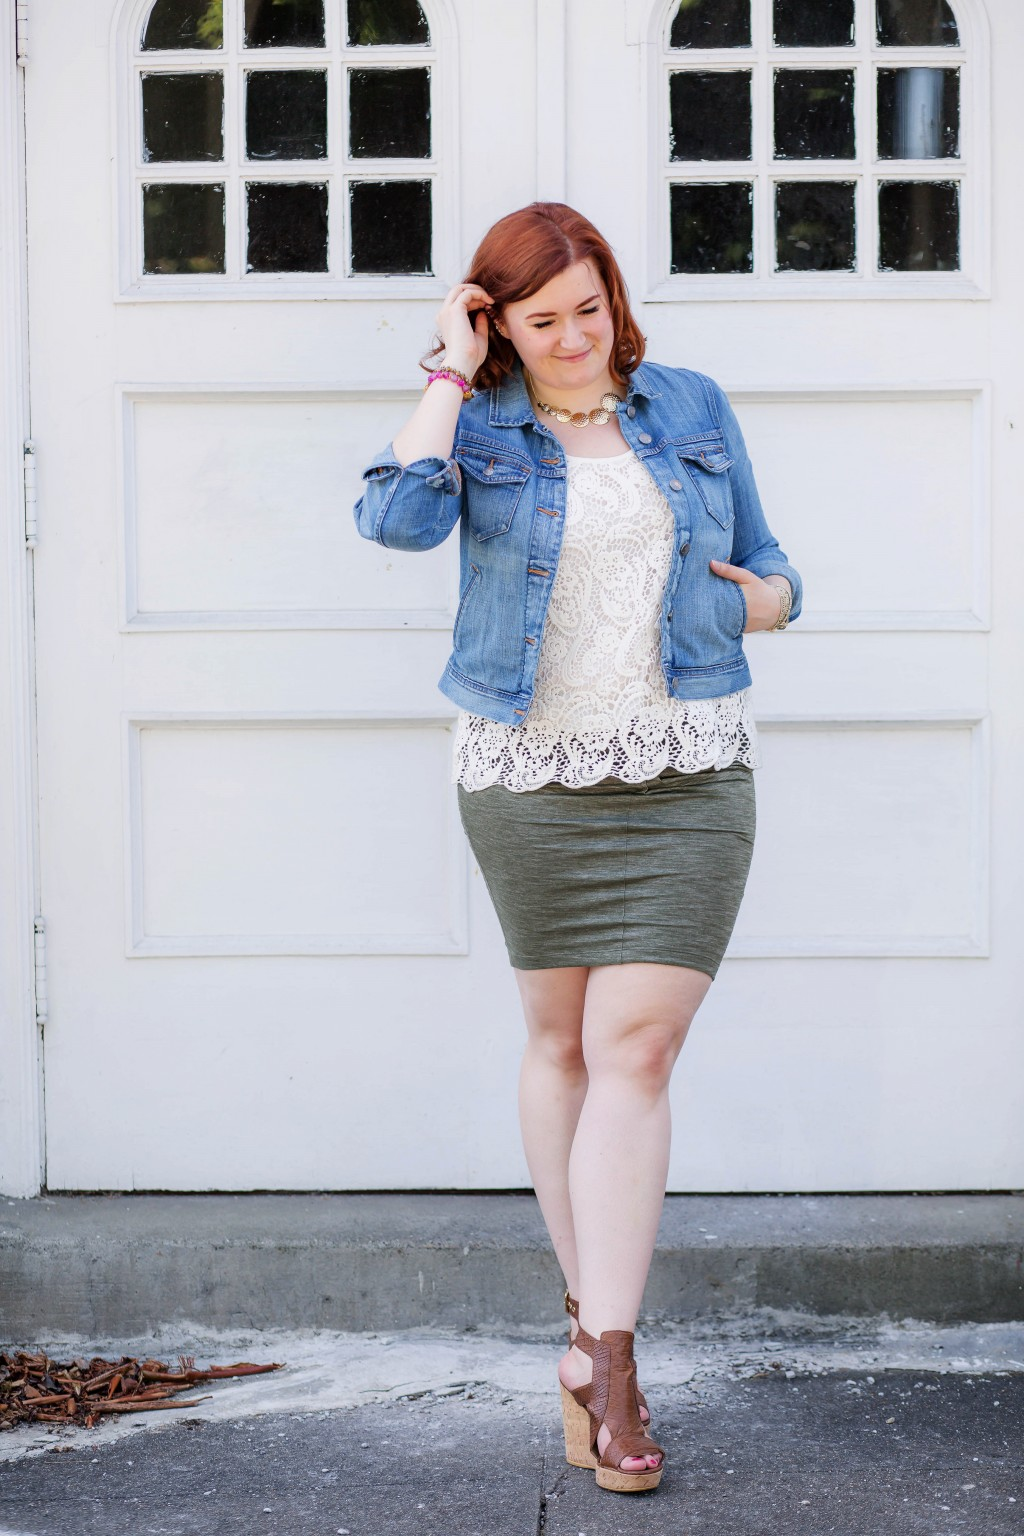 12 - Kate Retherford Redhead Style Blogger